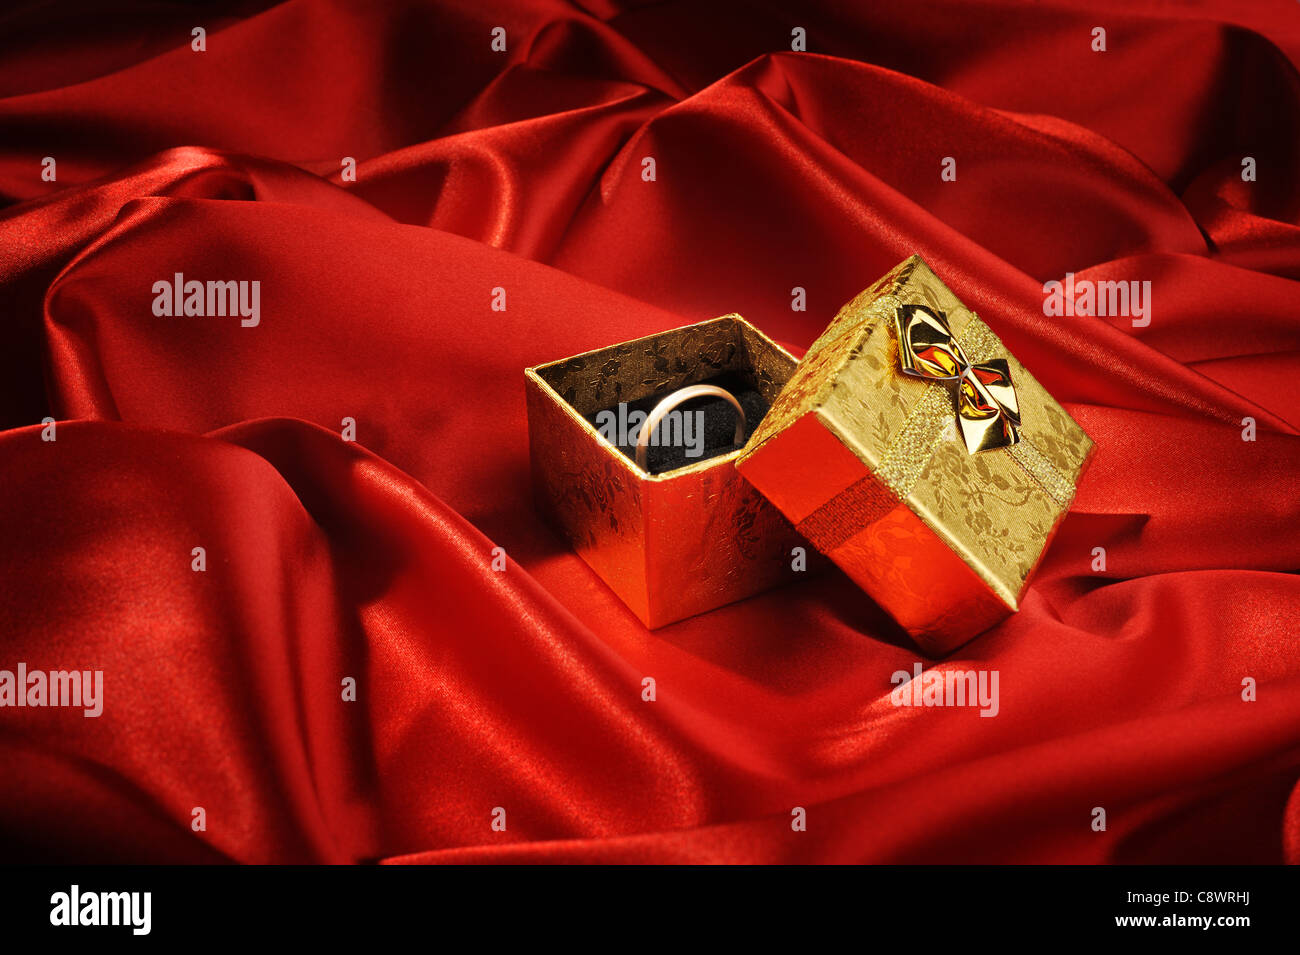 Gold boxes with a wedding ring on red silk - Stock Image